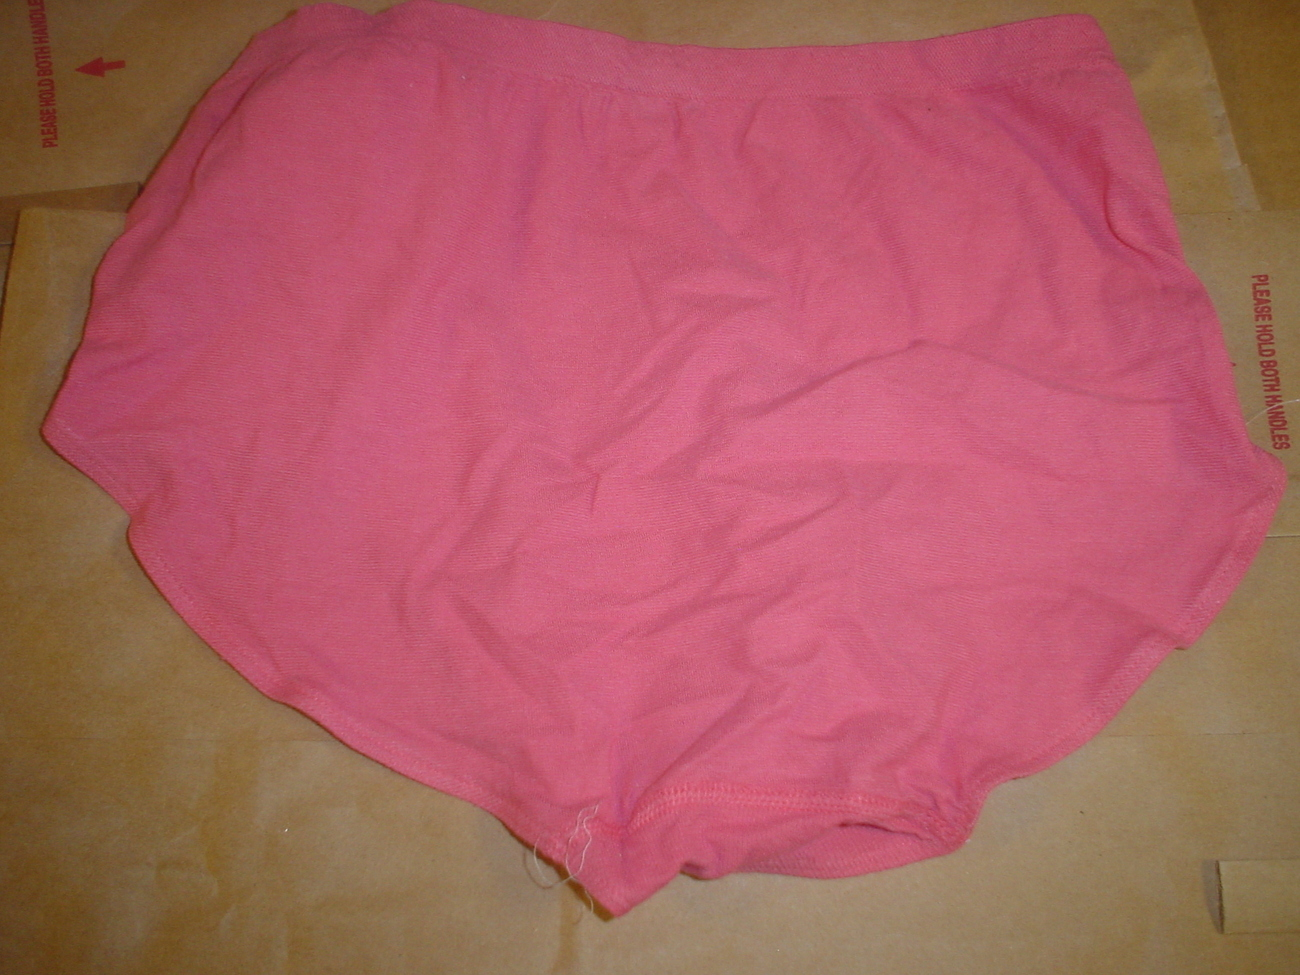 Jockey Seamfree Panty 6/Medium or 8/XLarge Rose SP-Slightly Imperfect NWOT